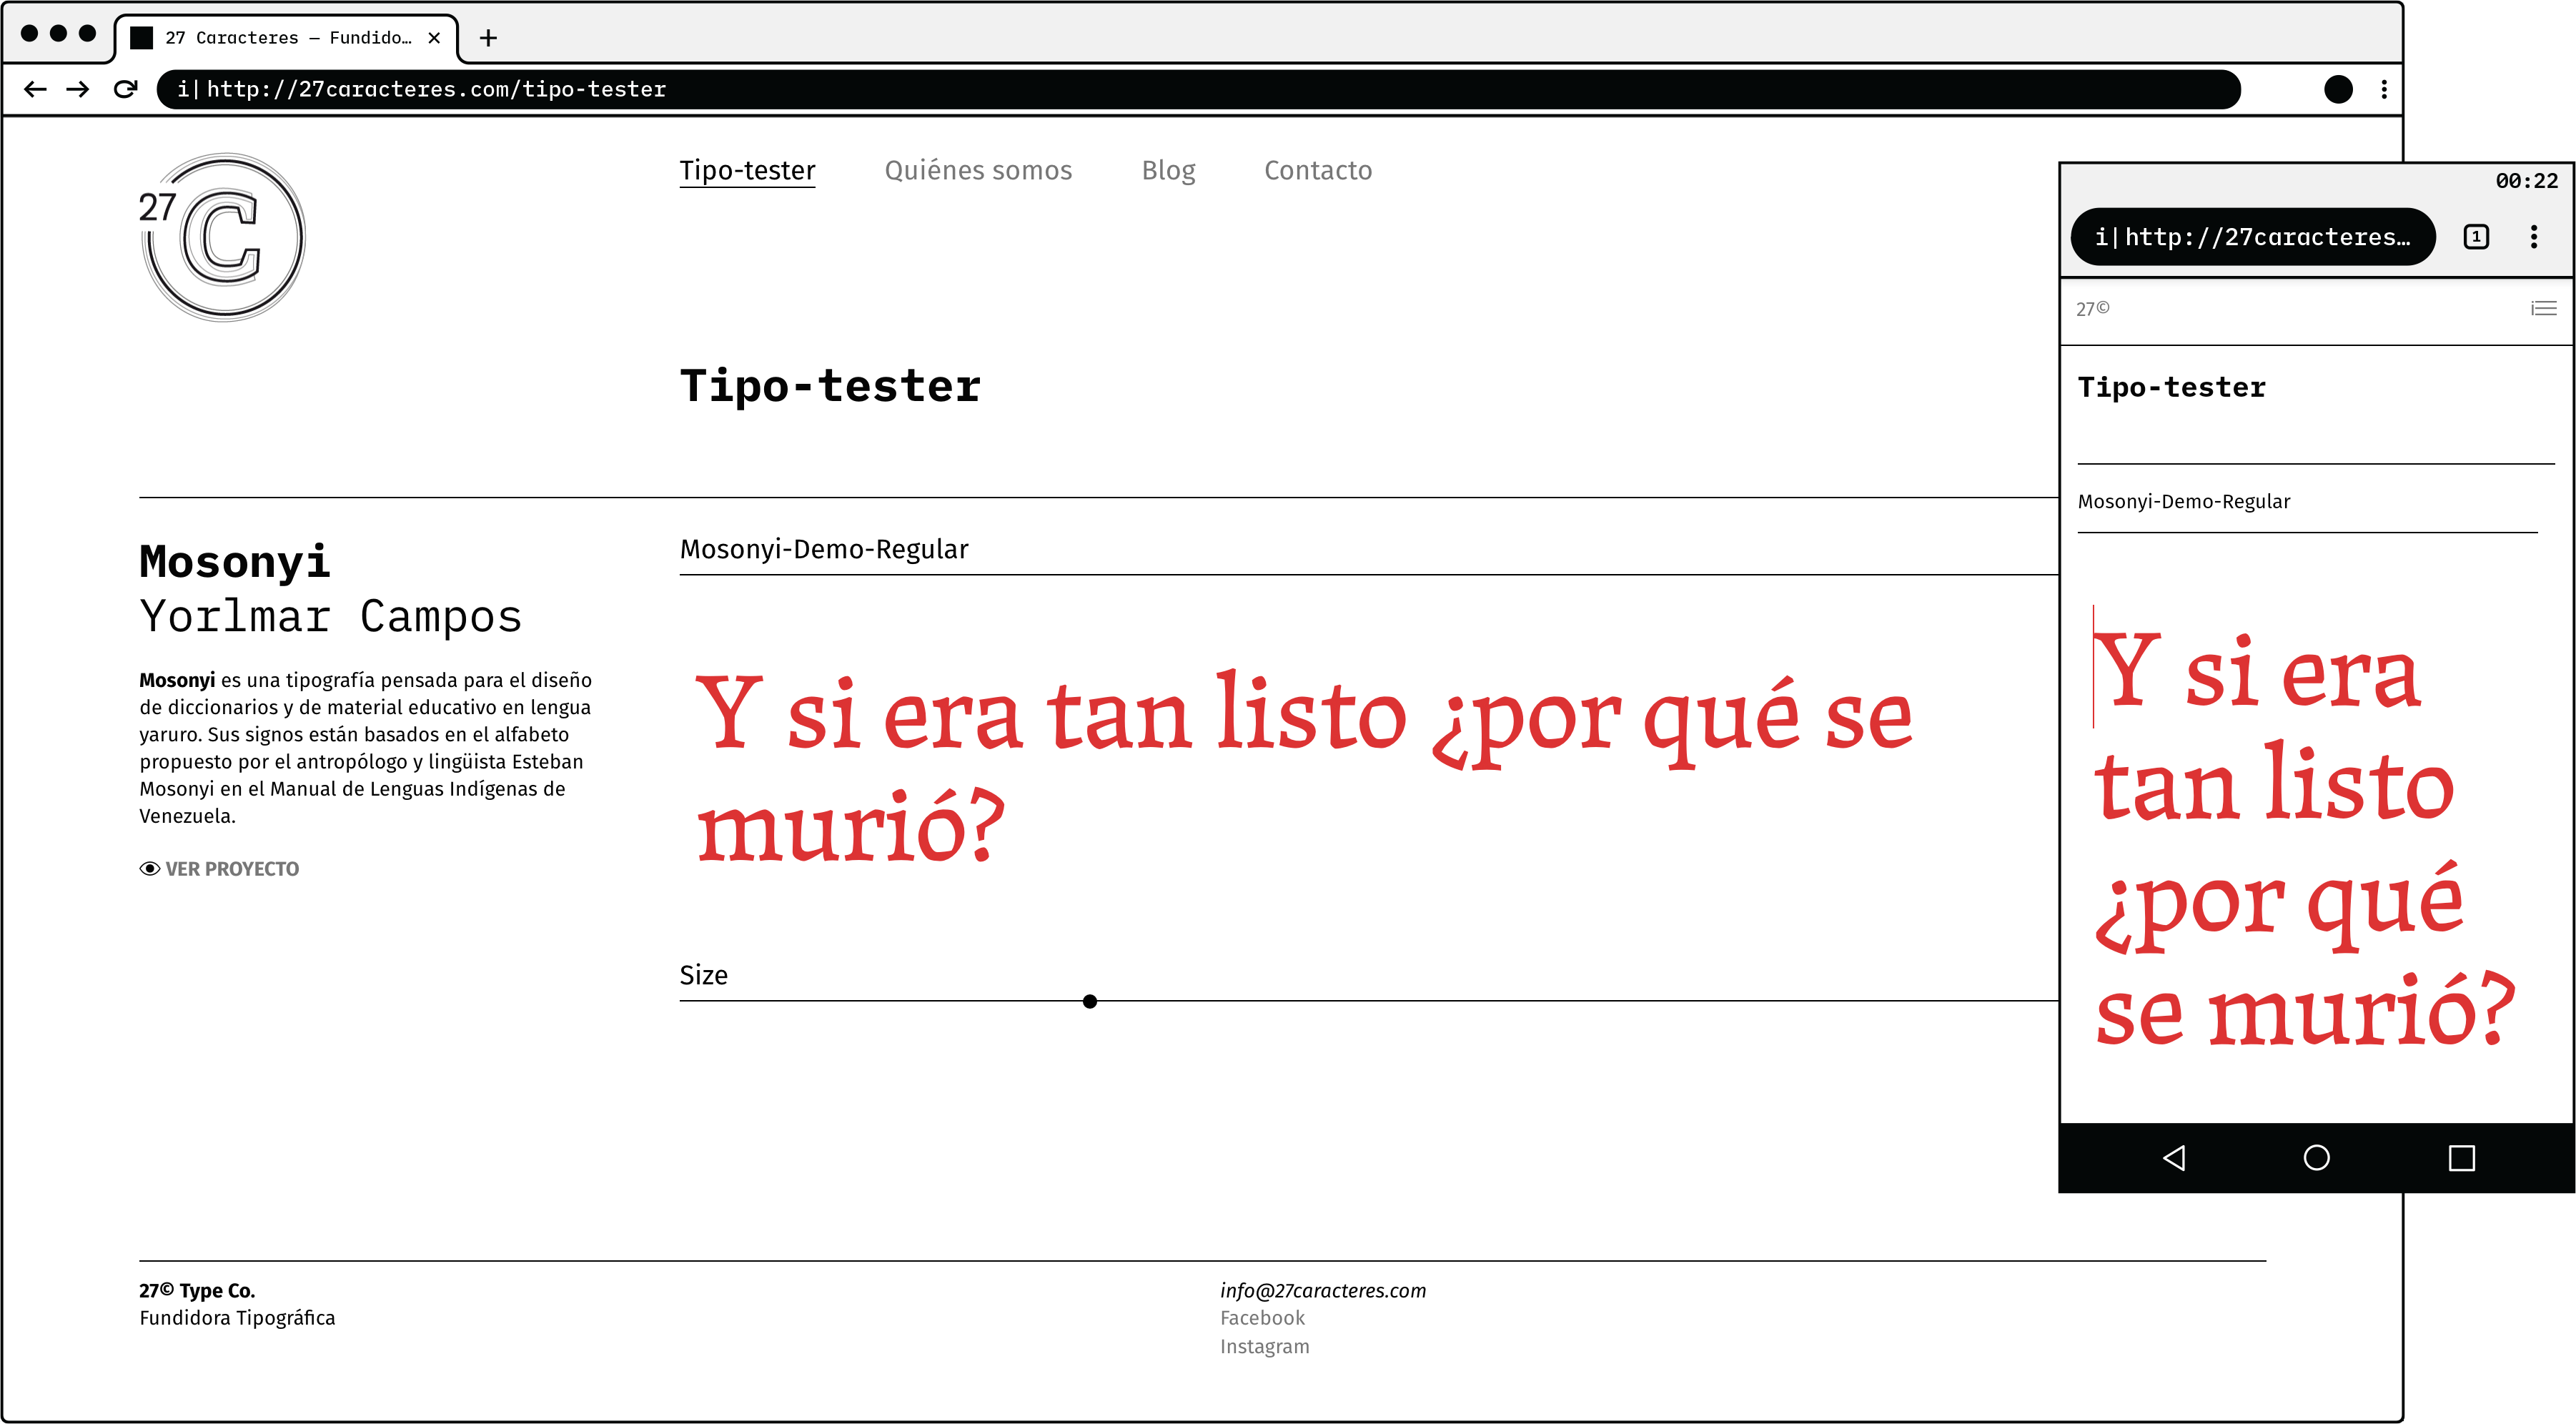 27 Caracteres website - Fonts In Use